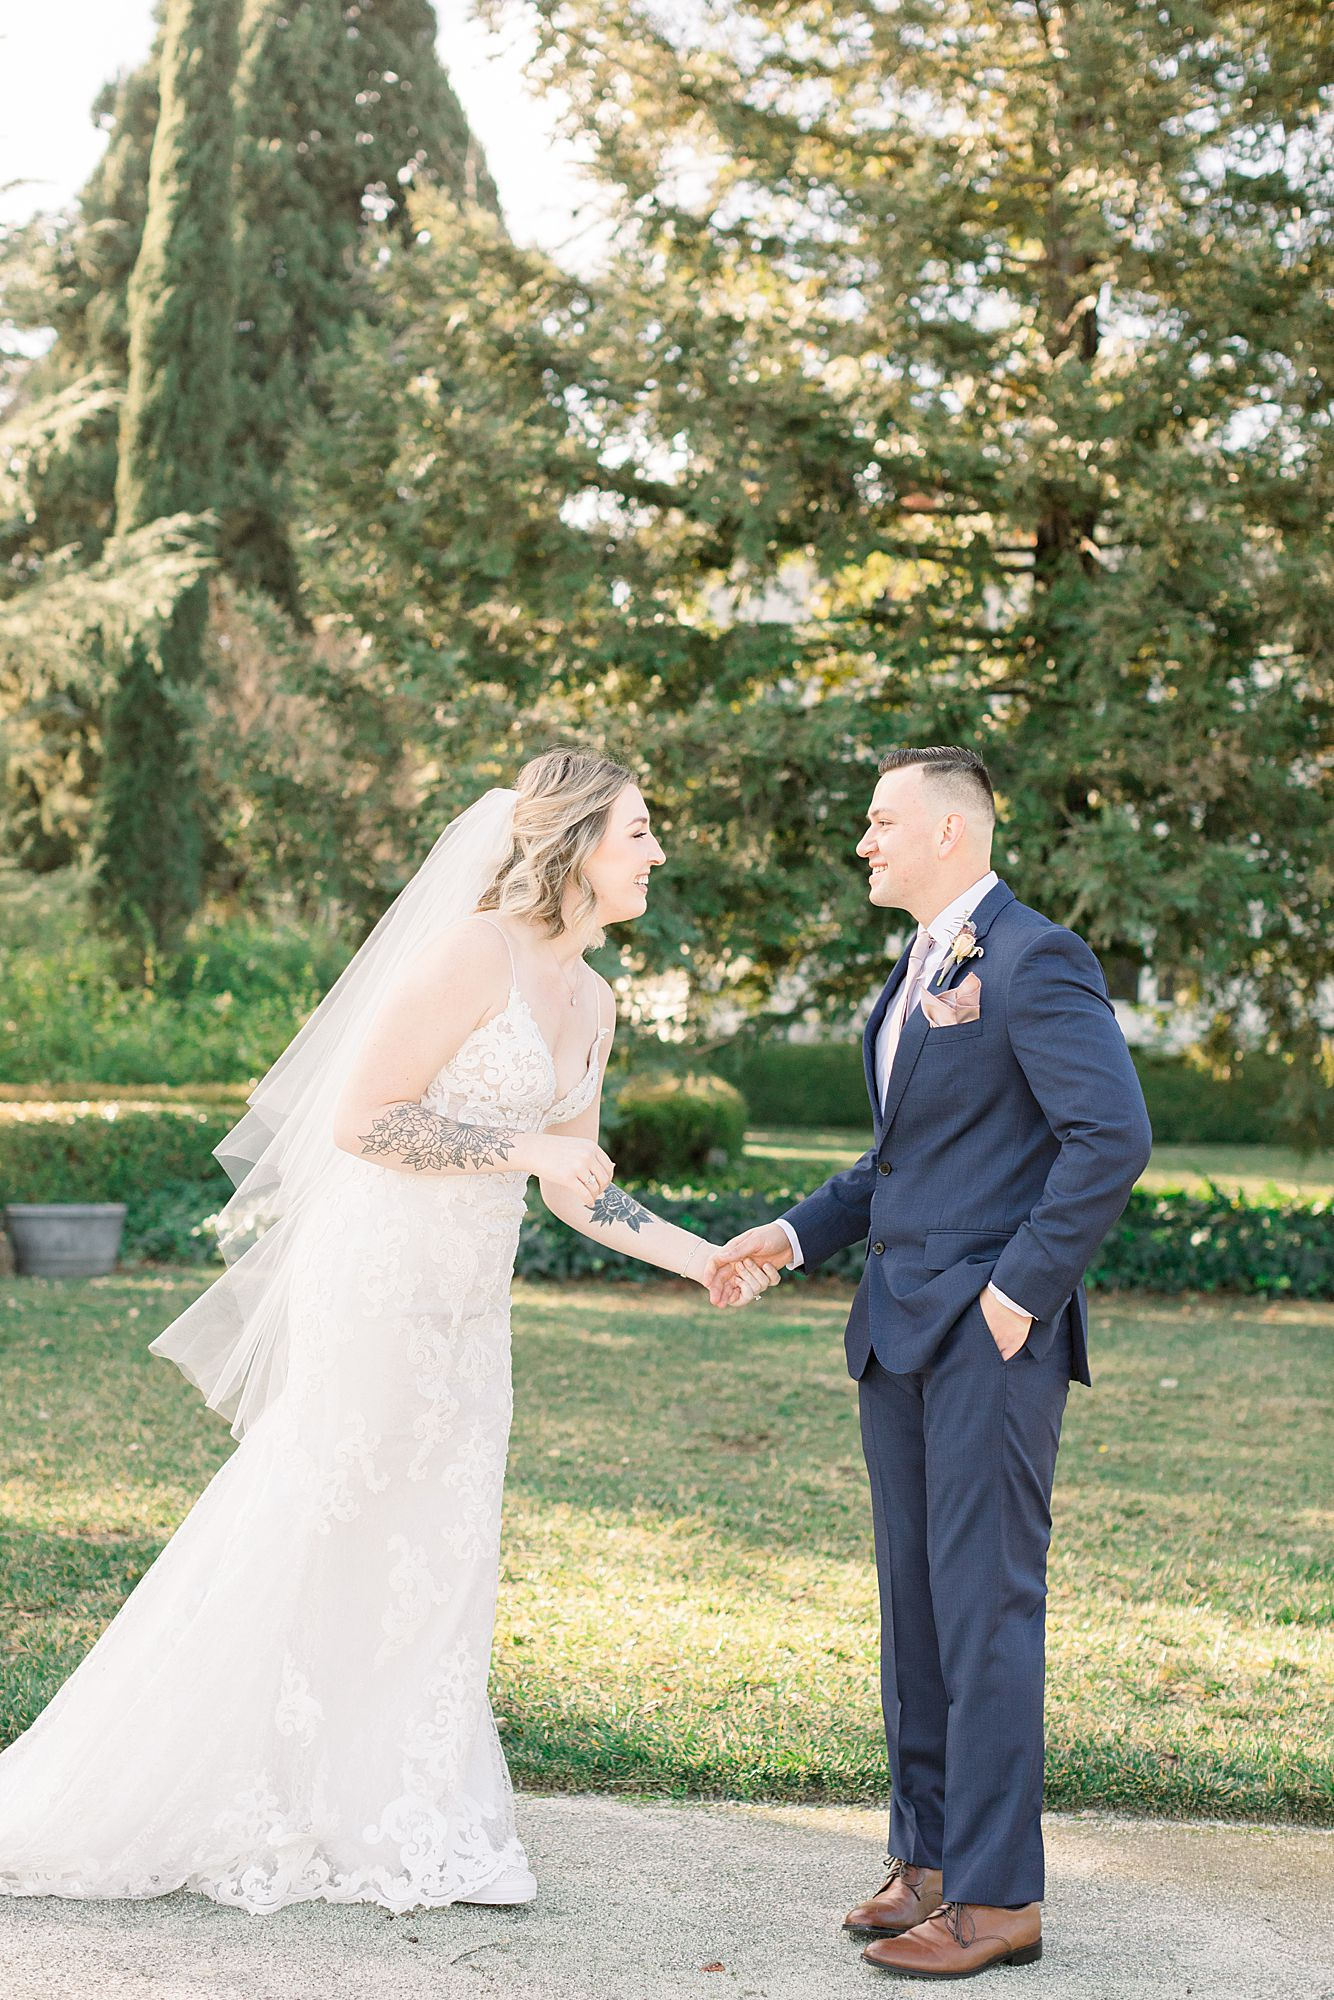 Inn at Park Winters Wedding - Lindsay and Shane - Ashley Baumgartner - Park Winters Wedding Photographer - Sacramento Wedding Photographer_0016.jpg